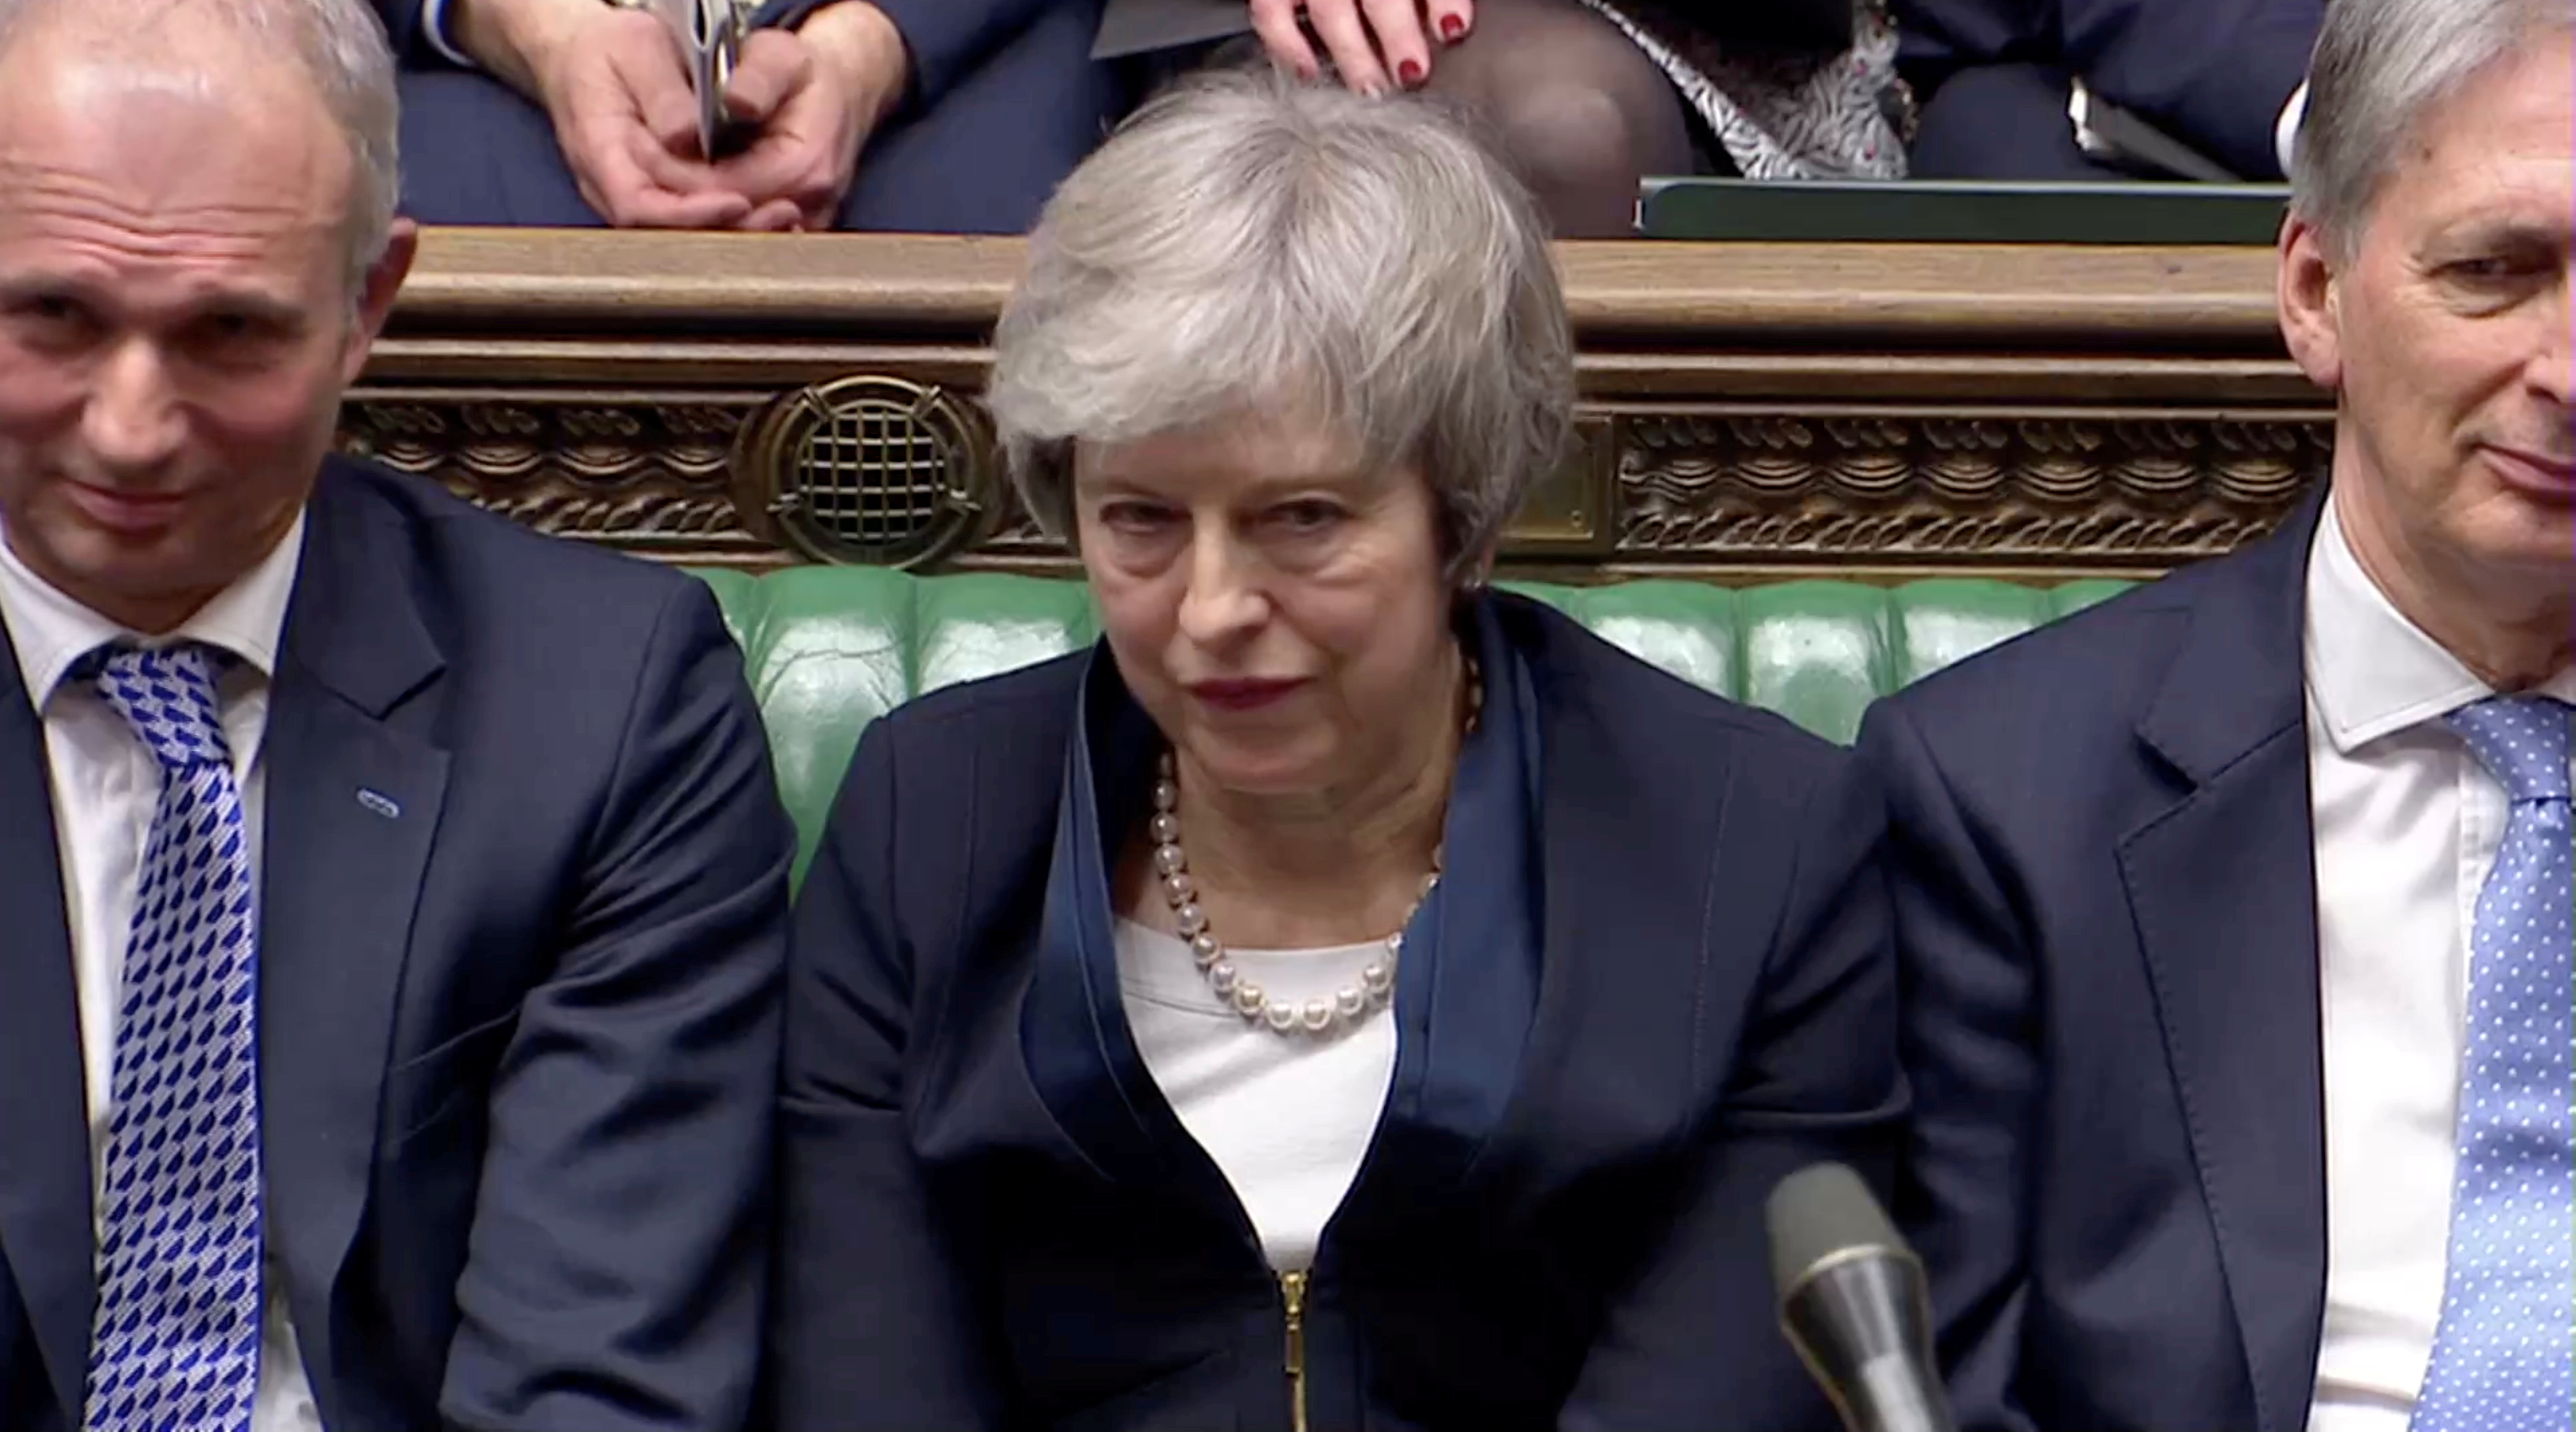 Prime Minister Theresa May sits down in Parliament after the vote on May's Brexit deal, in London, Britain, January 15, 2019 in this screengrab taken from video. Reuters TV via REUTERS TPX IMAGES OF THE DAY - RC1C5CCEC0A0